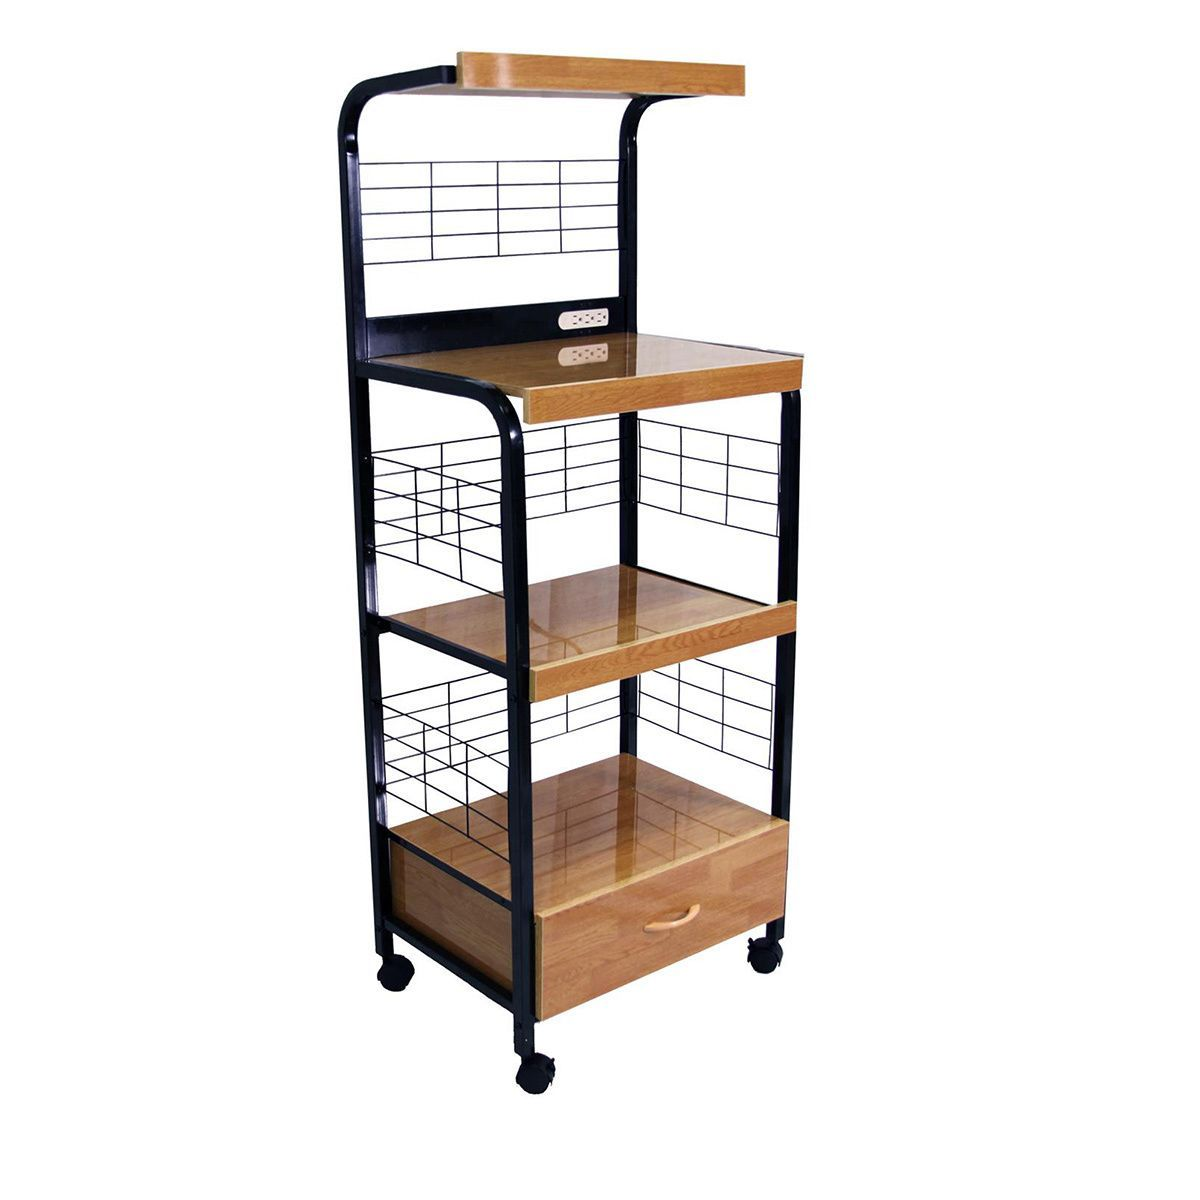 Charming This Utility Cart Will Provide A Perfect Place For A Microwave, Toaster Oven  Or Other